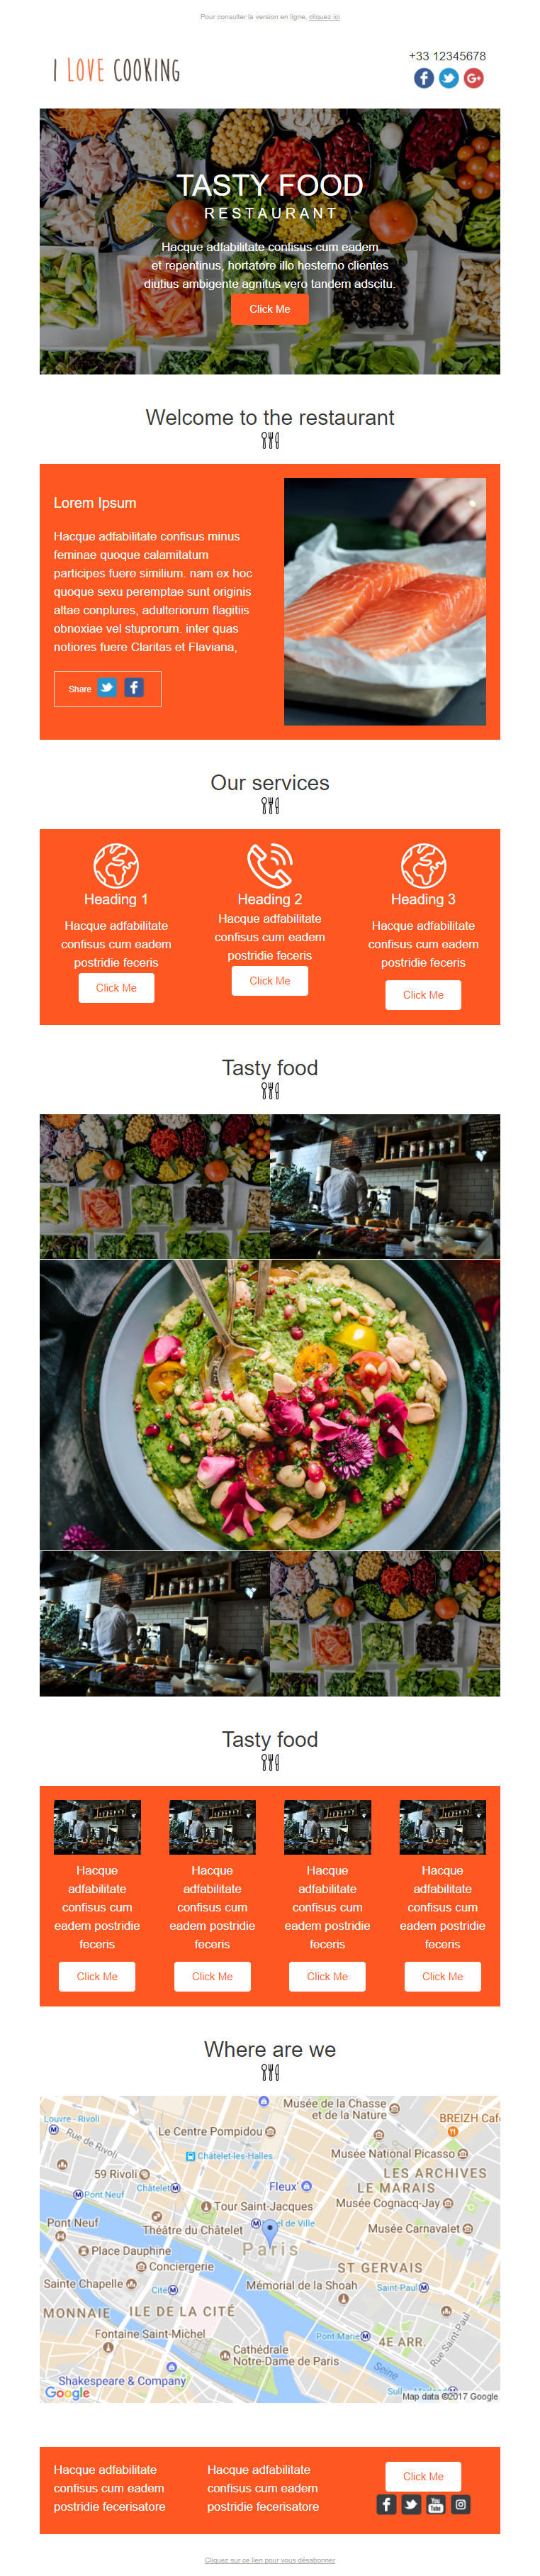 Exemple newsletter I love cooking